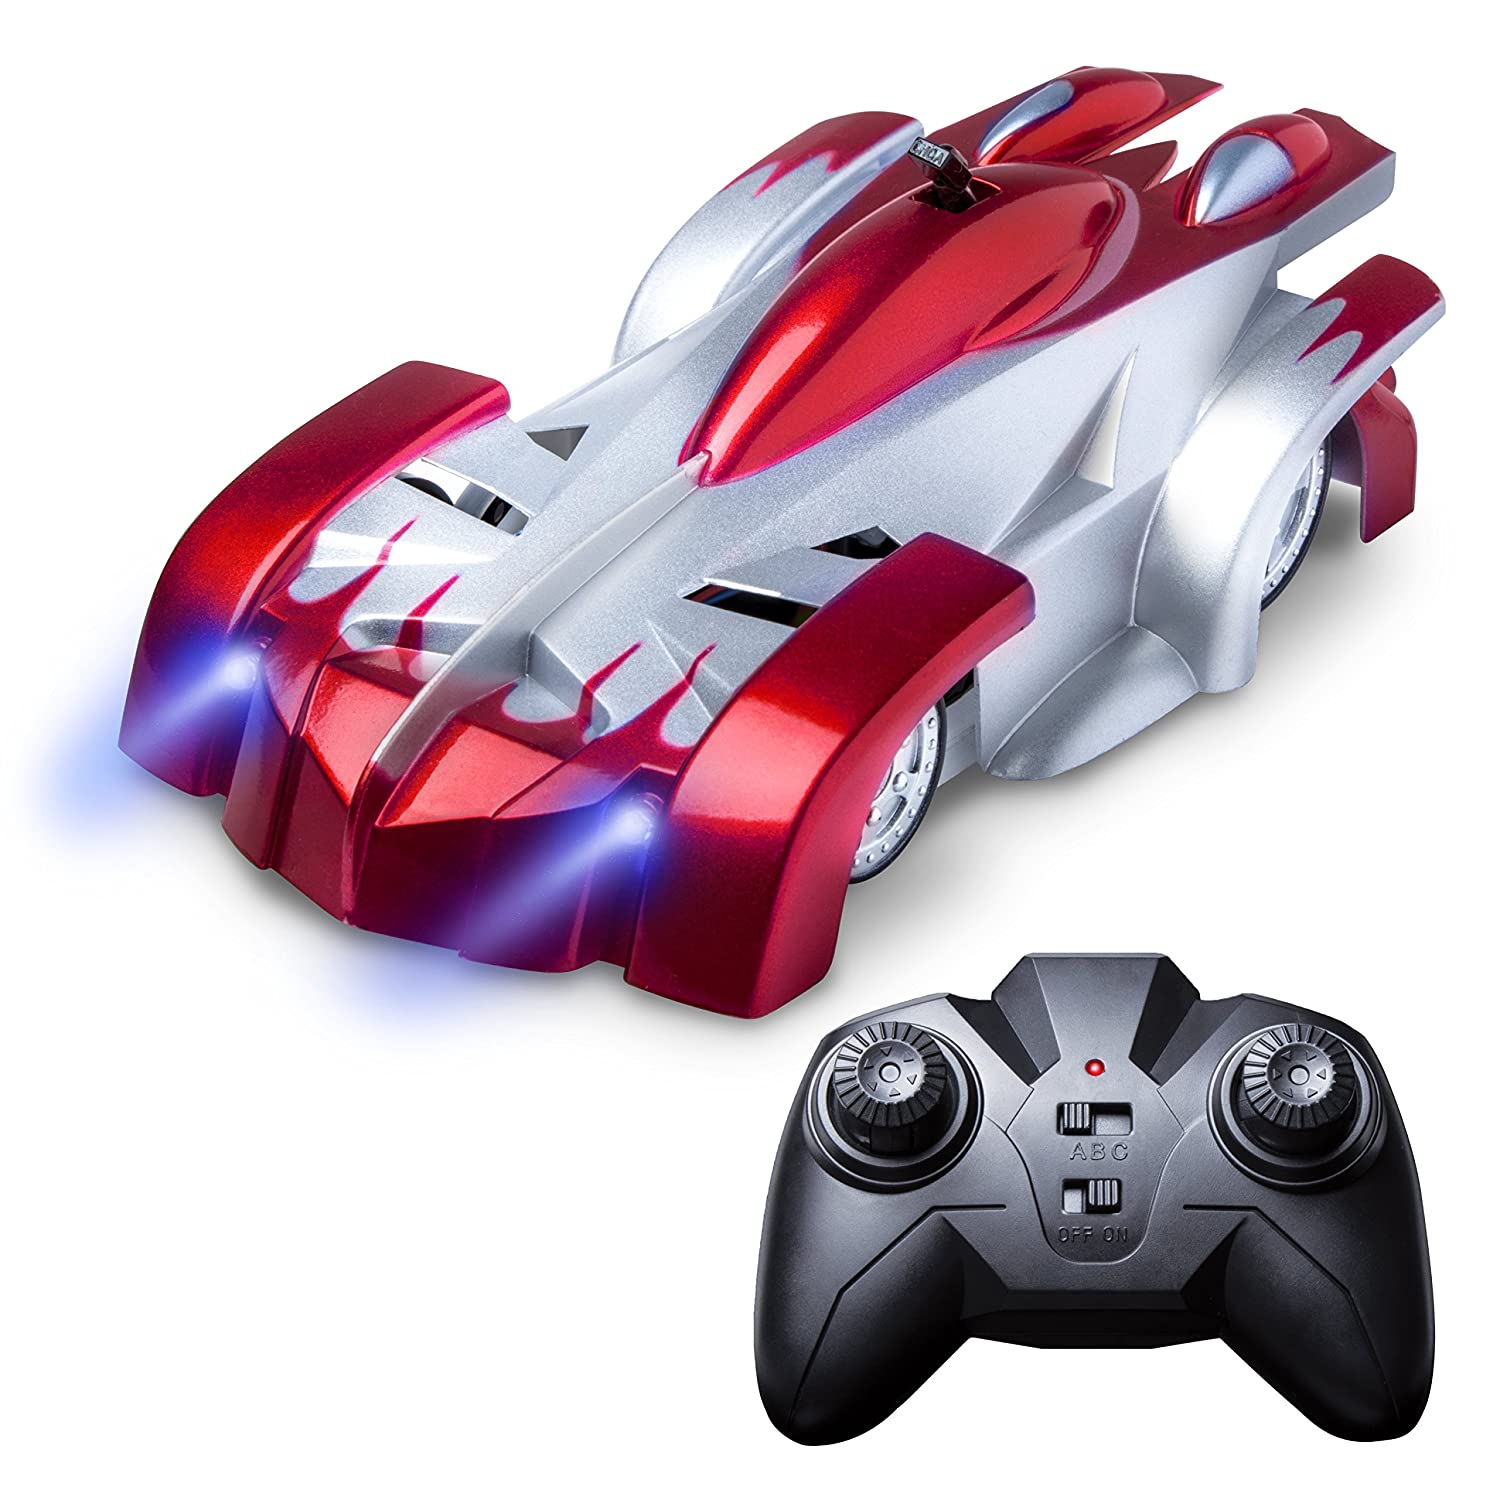 Amazon Toy RC Vehicles Toys & Games Helicopters Cars